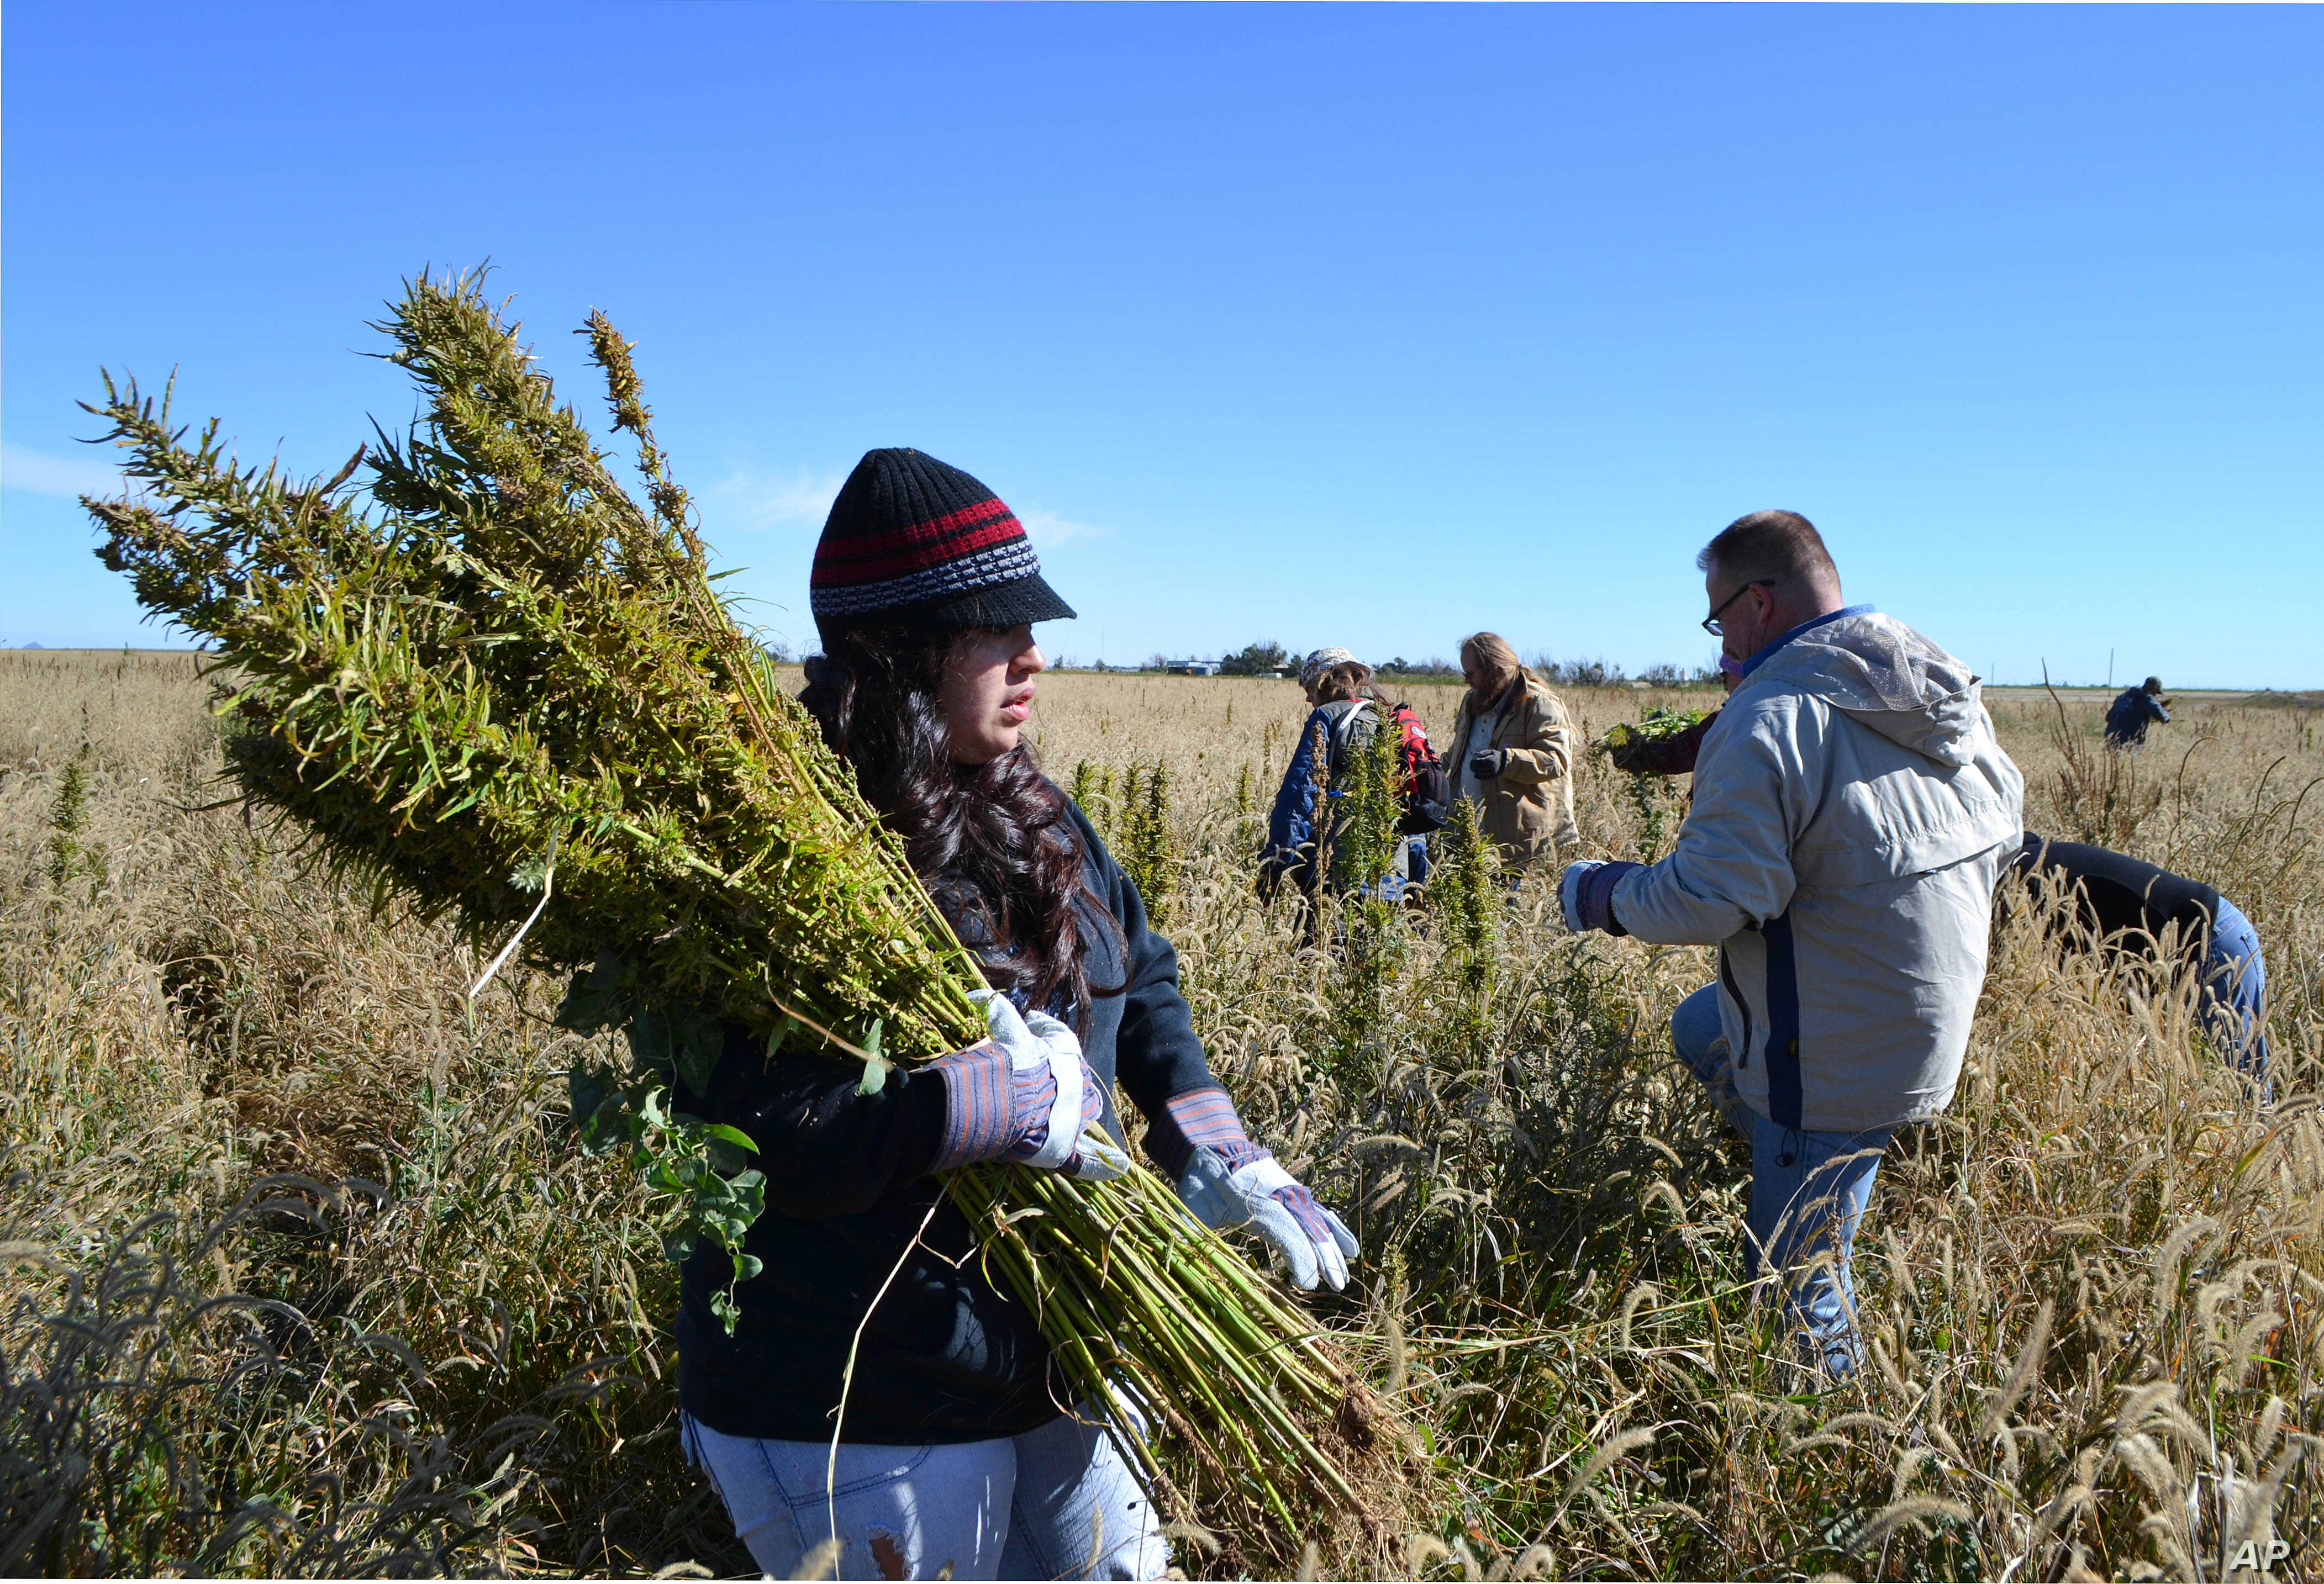 In this Oct. 5, 2013 photo, volunteers harvest hemp at a farm in Springfield, Colo. during the first known harvest of industrial hemp in the U.S. since the 1950s. America is one of hemp's fastest-growing markets, with imports largely coming from Ch...